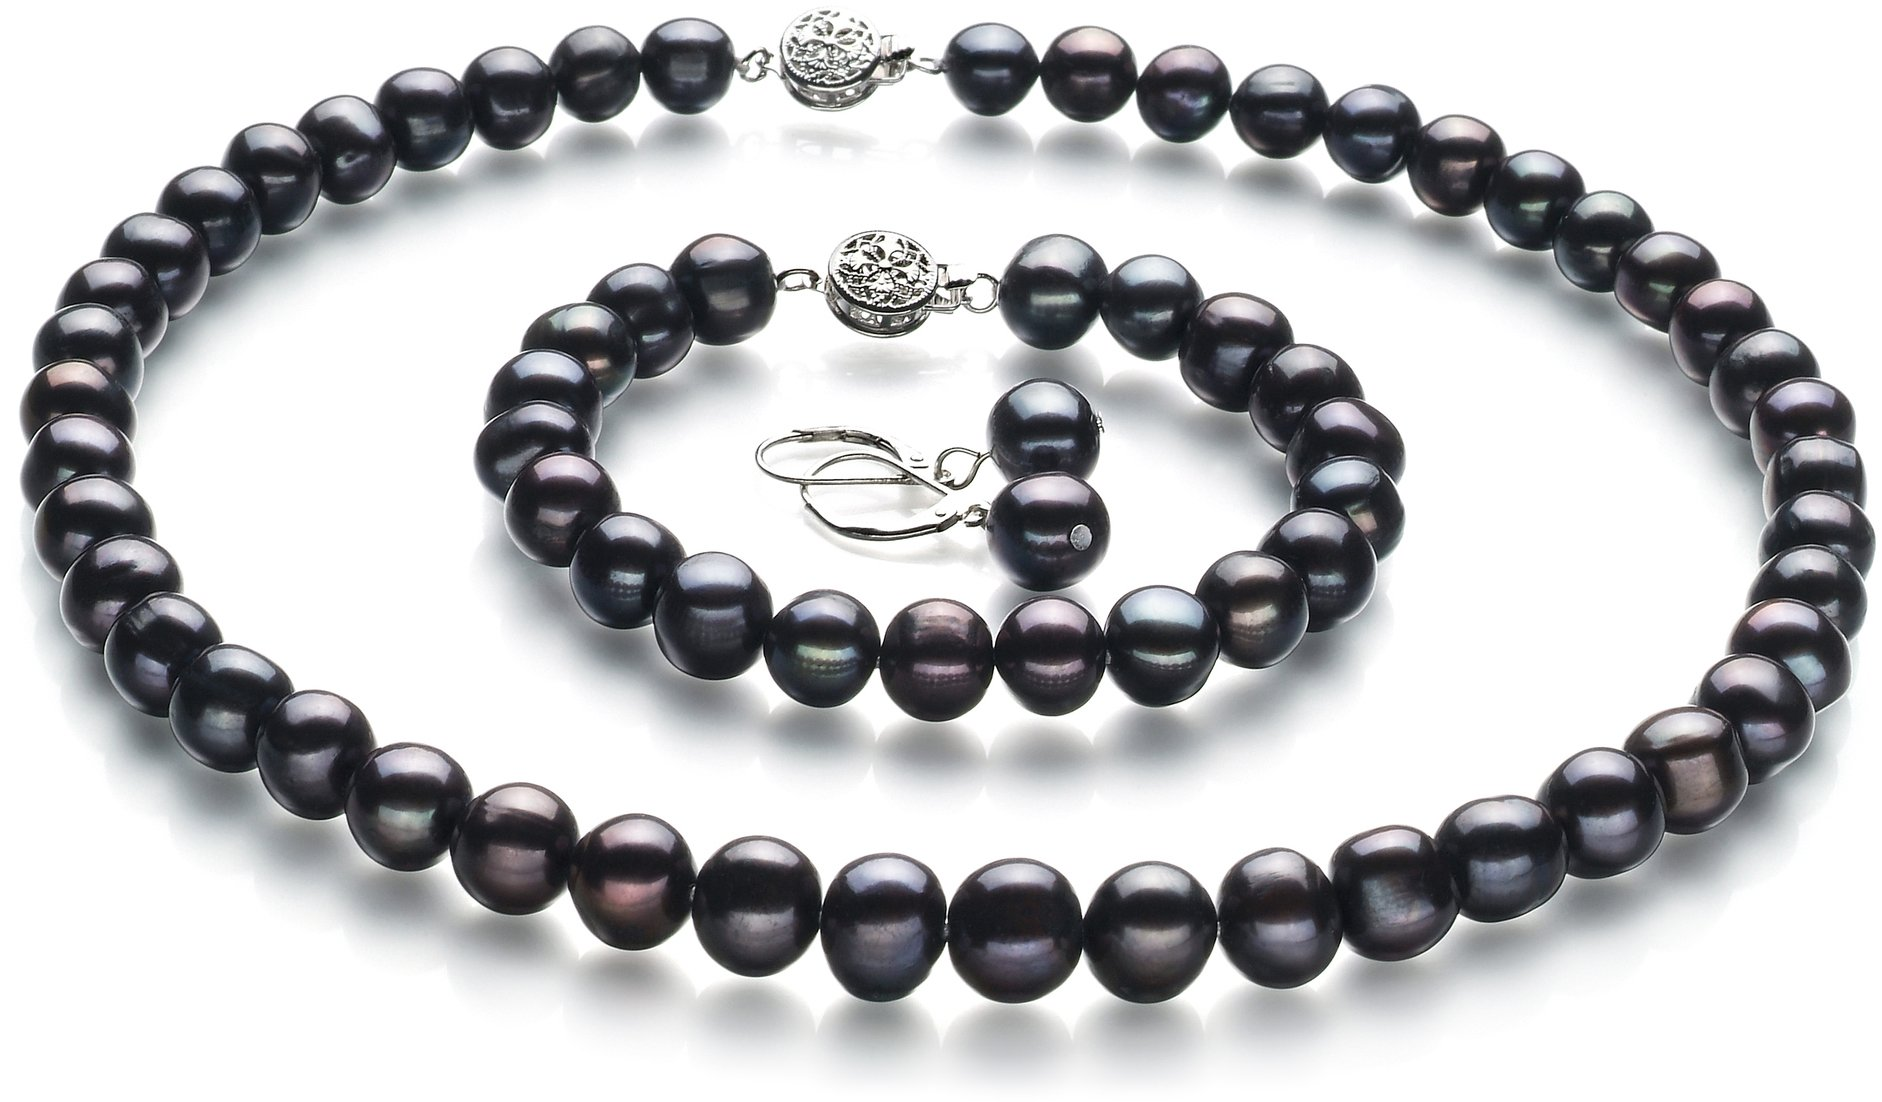 PearlsOnly - Kaitlyn Black 8-9mm A Quality Freshwater Cultured Pearl Set-18 in Princess length